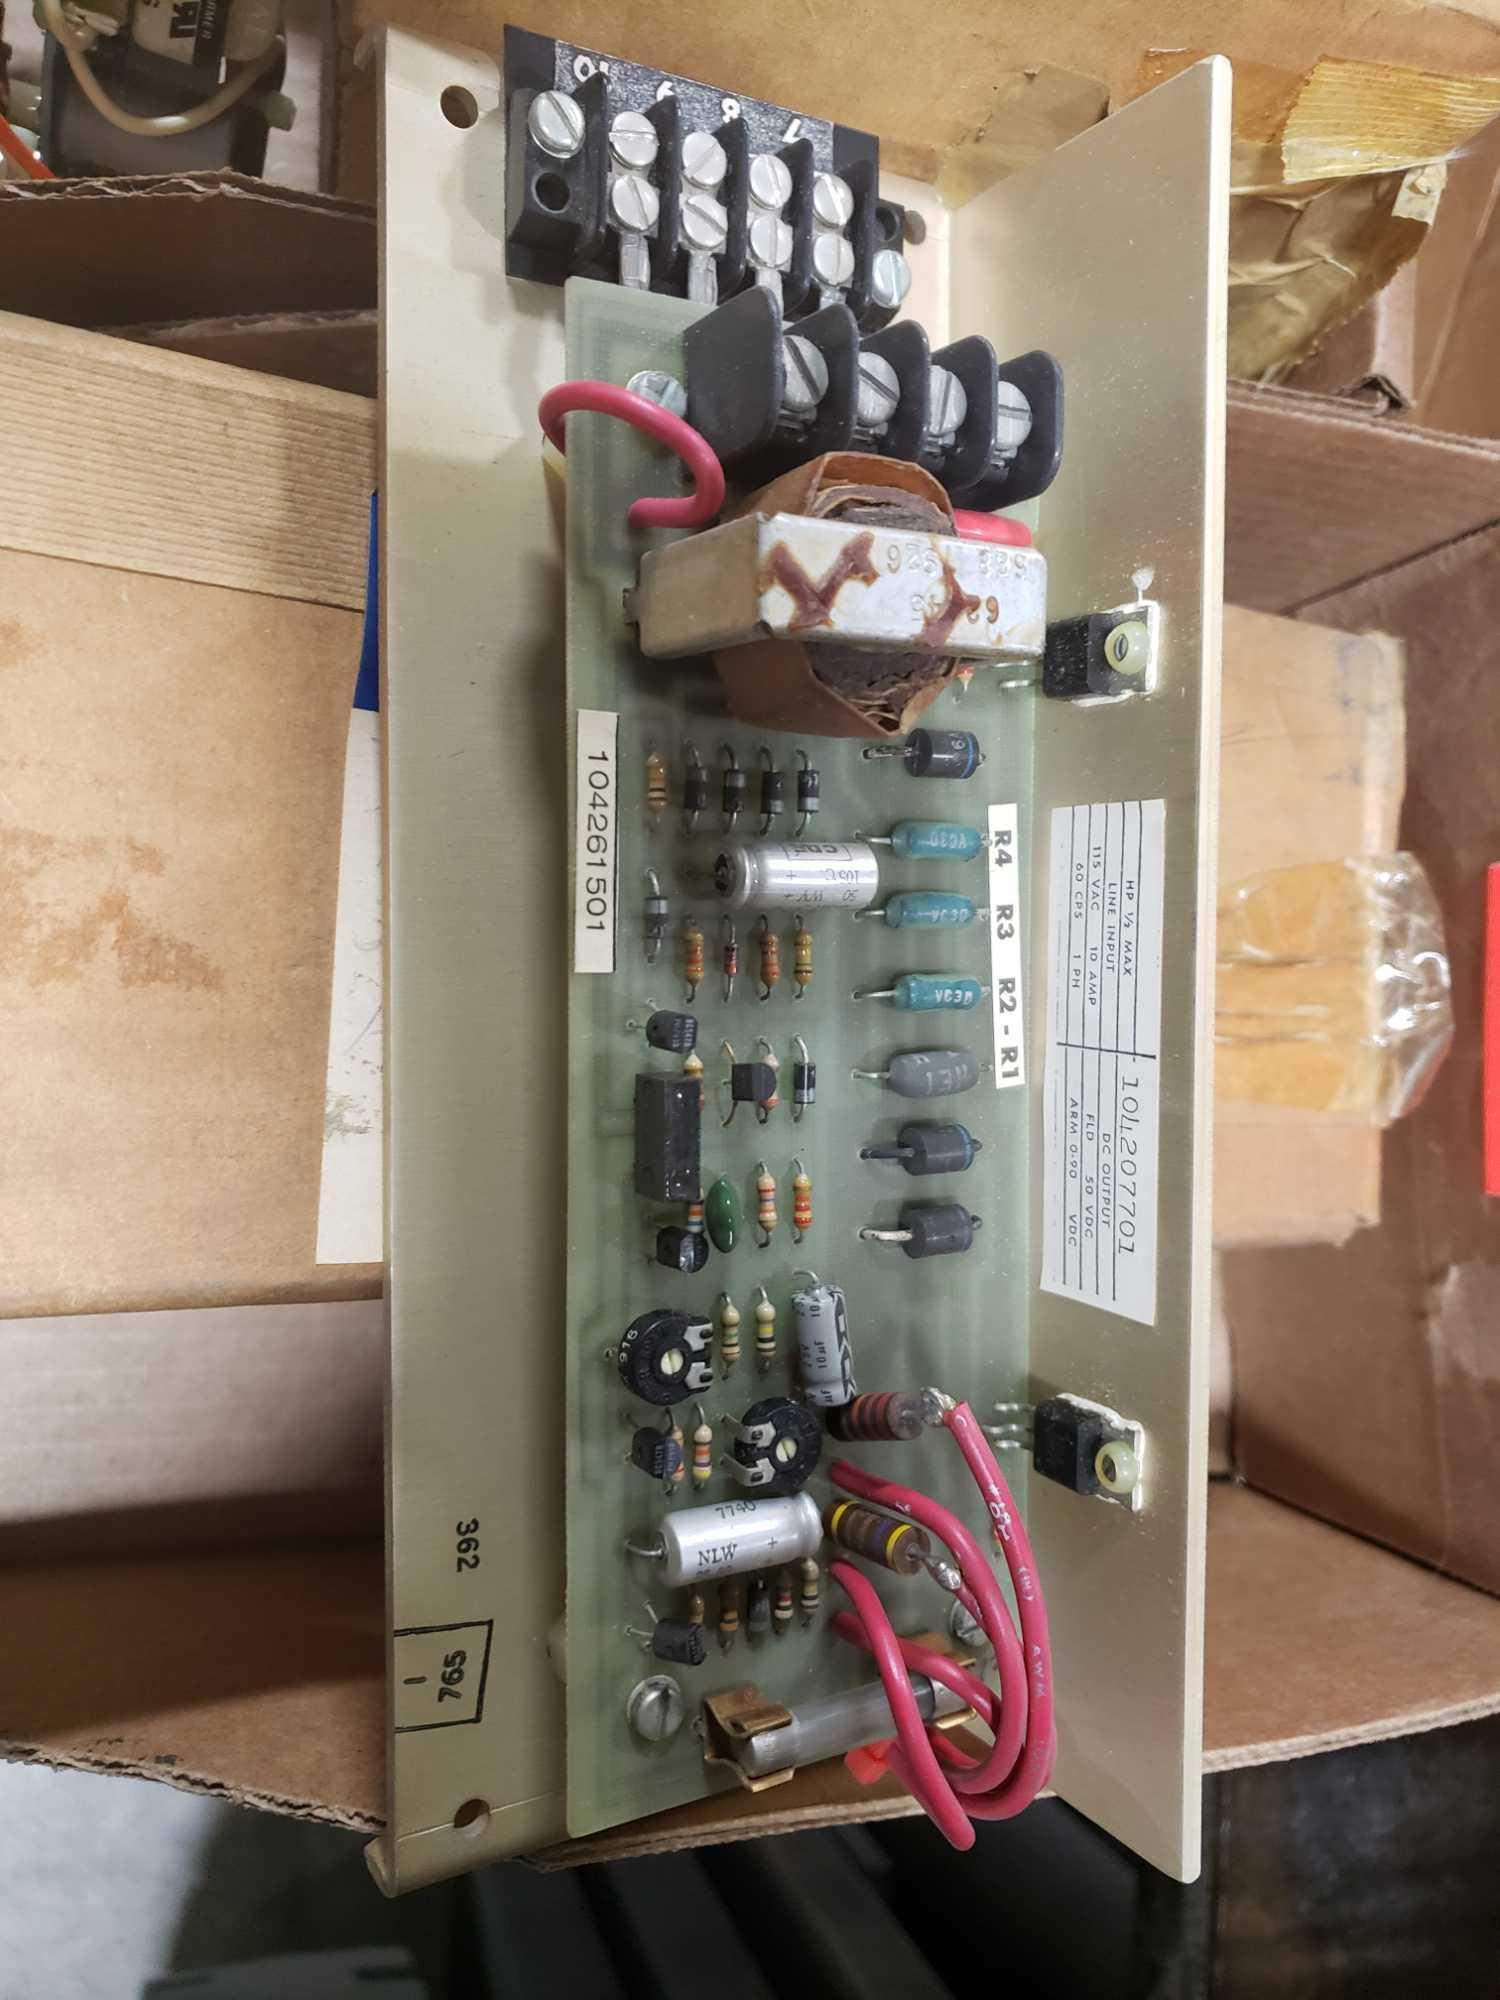 Fincor model 104207701 power supply. New in box. - Image 3 of 4